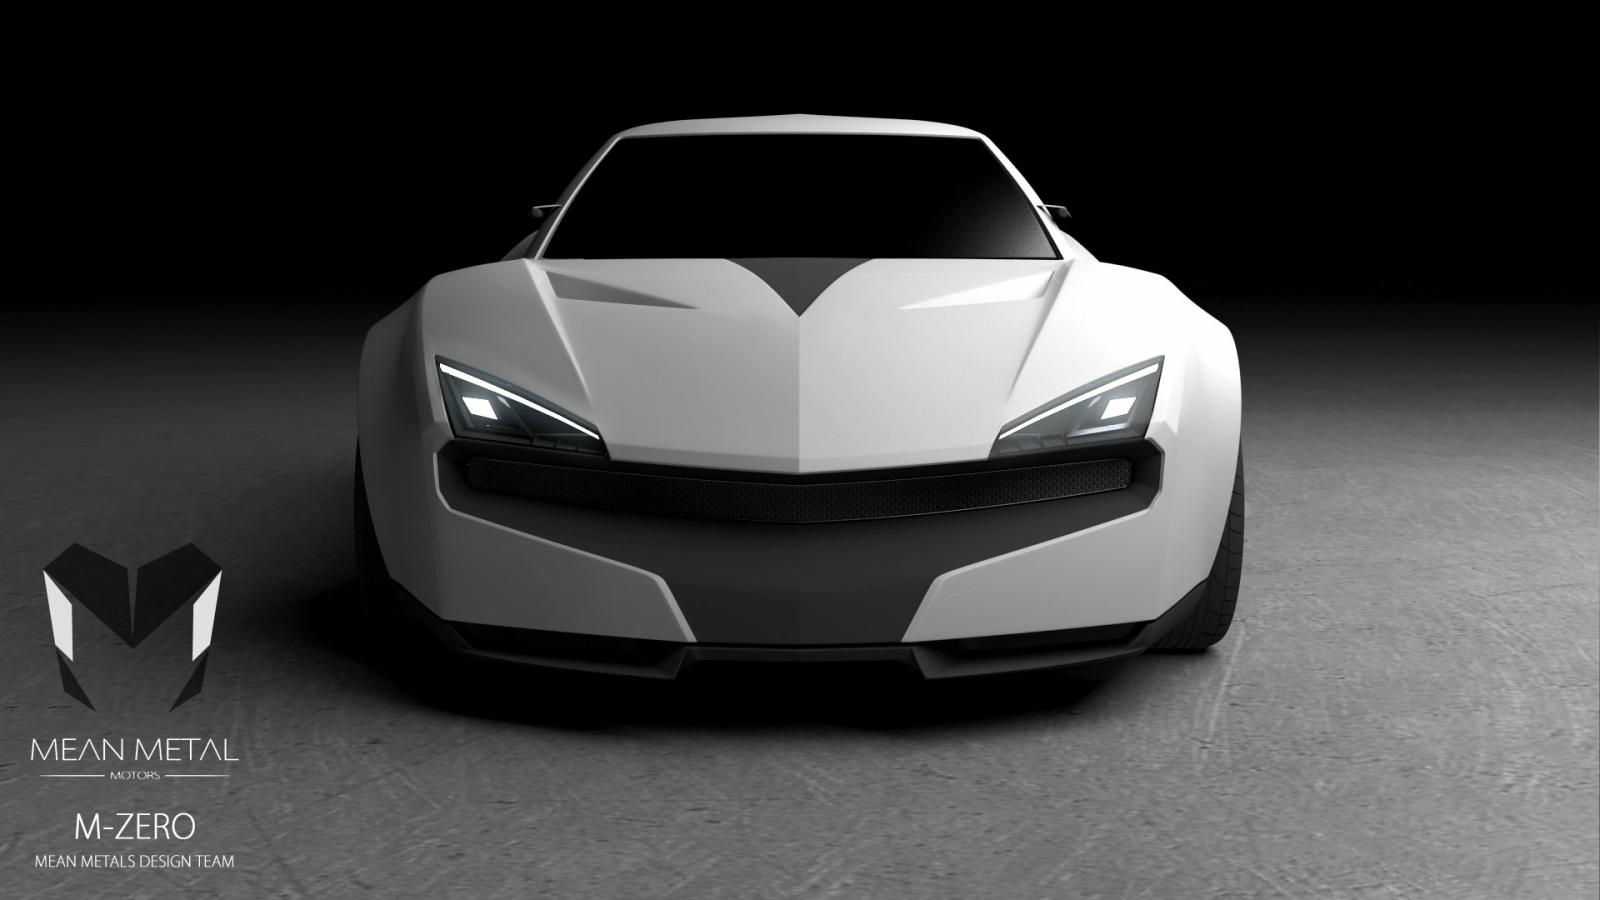 indian startup mean metal motors teases m zero supercar